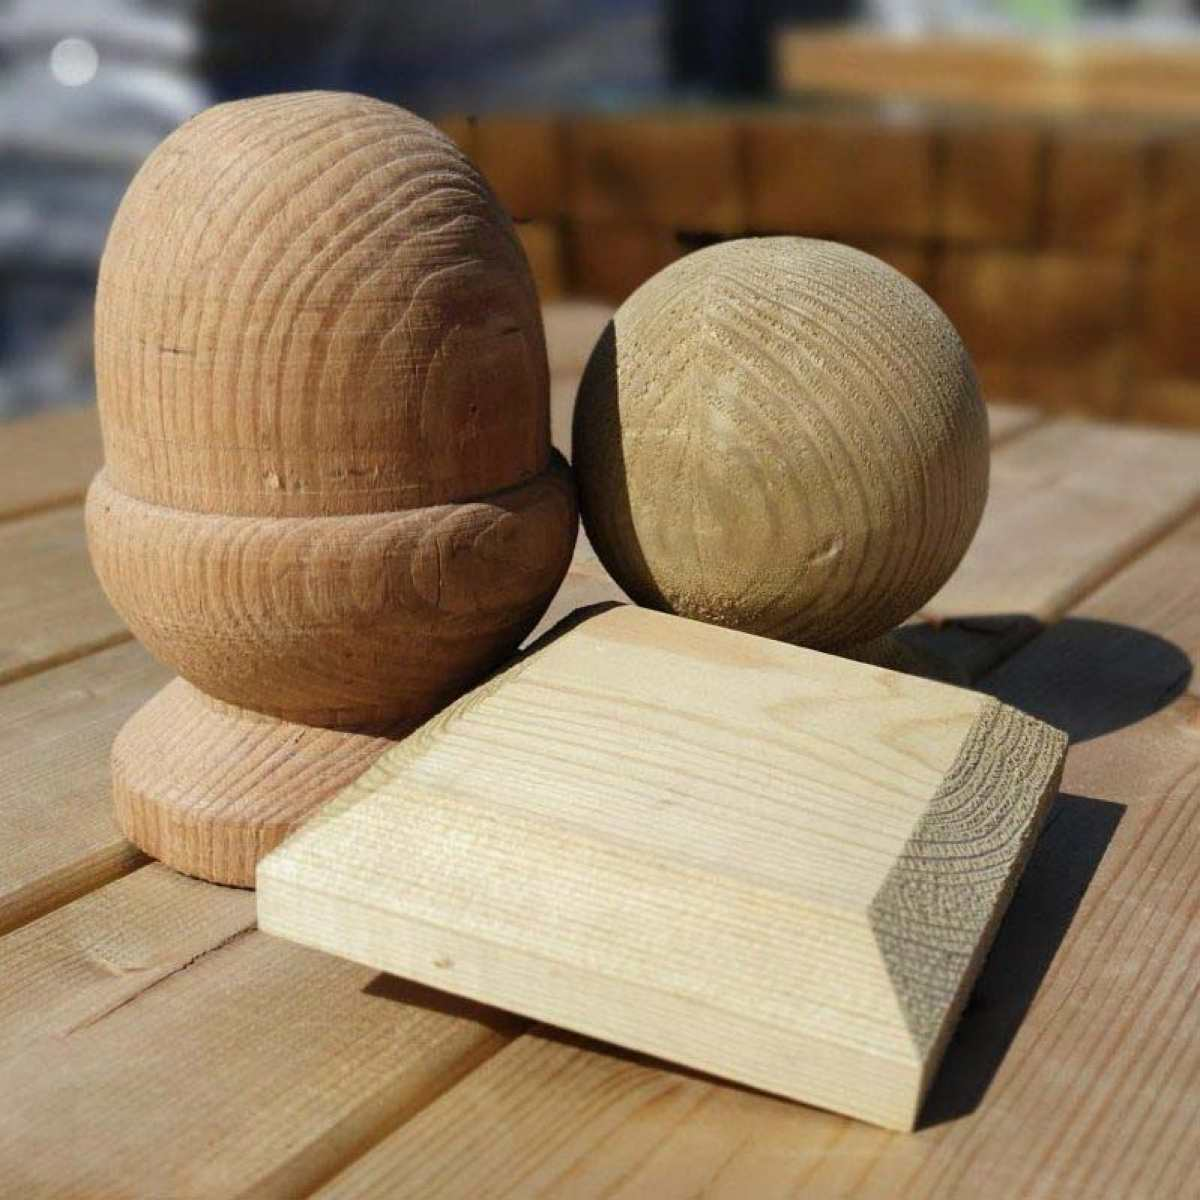 acorn and ball cap websterstimber Image by Websters Timber